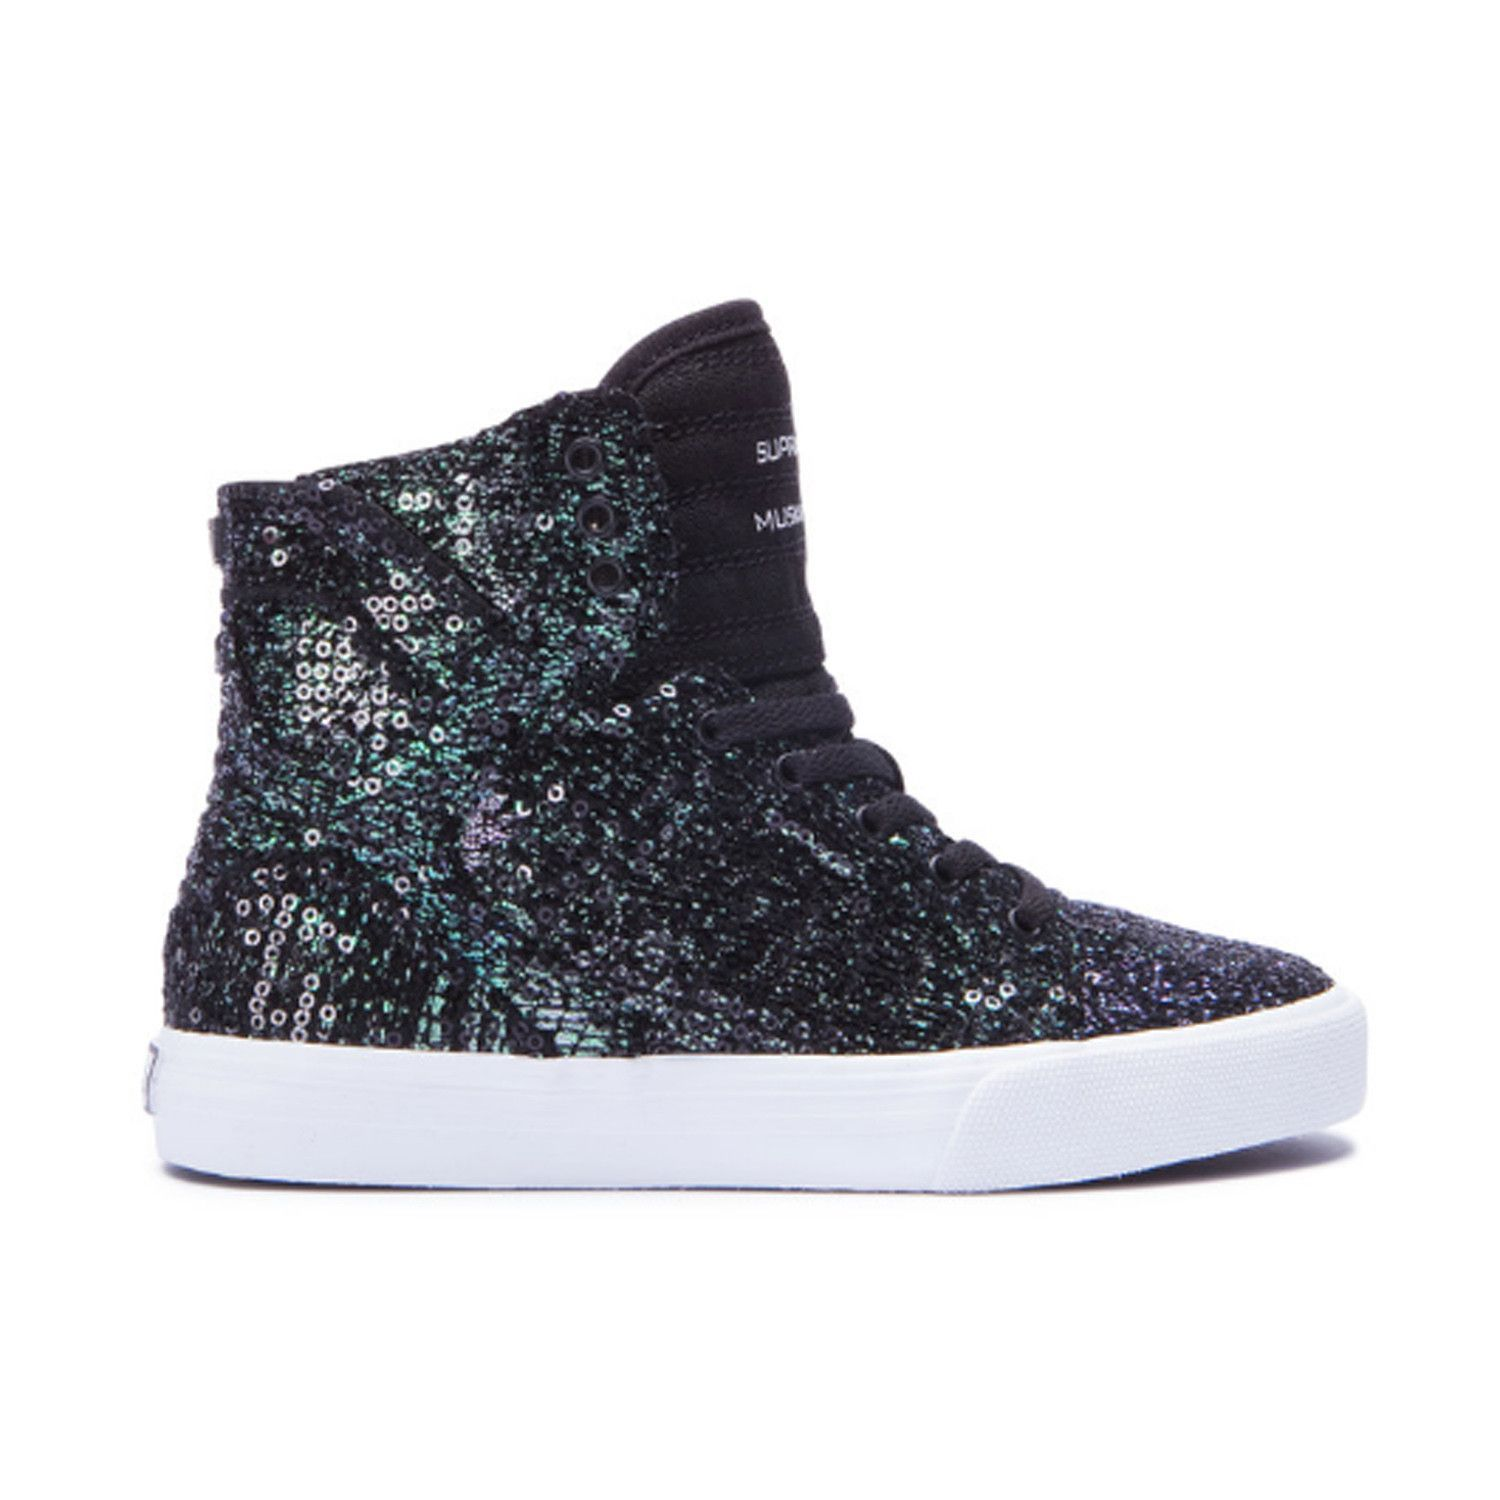 SUPRA Skytop Youth/Kids | Black Sequin (58002-098-M)